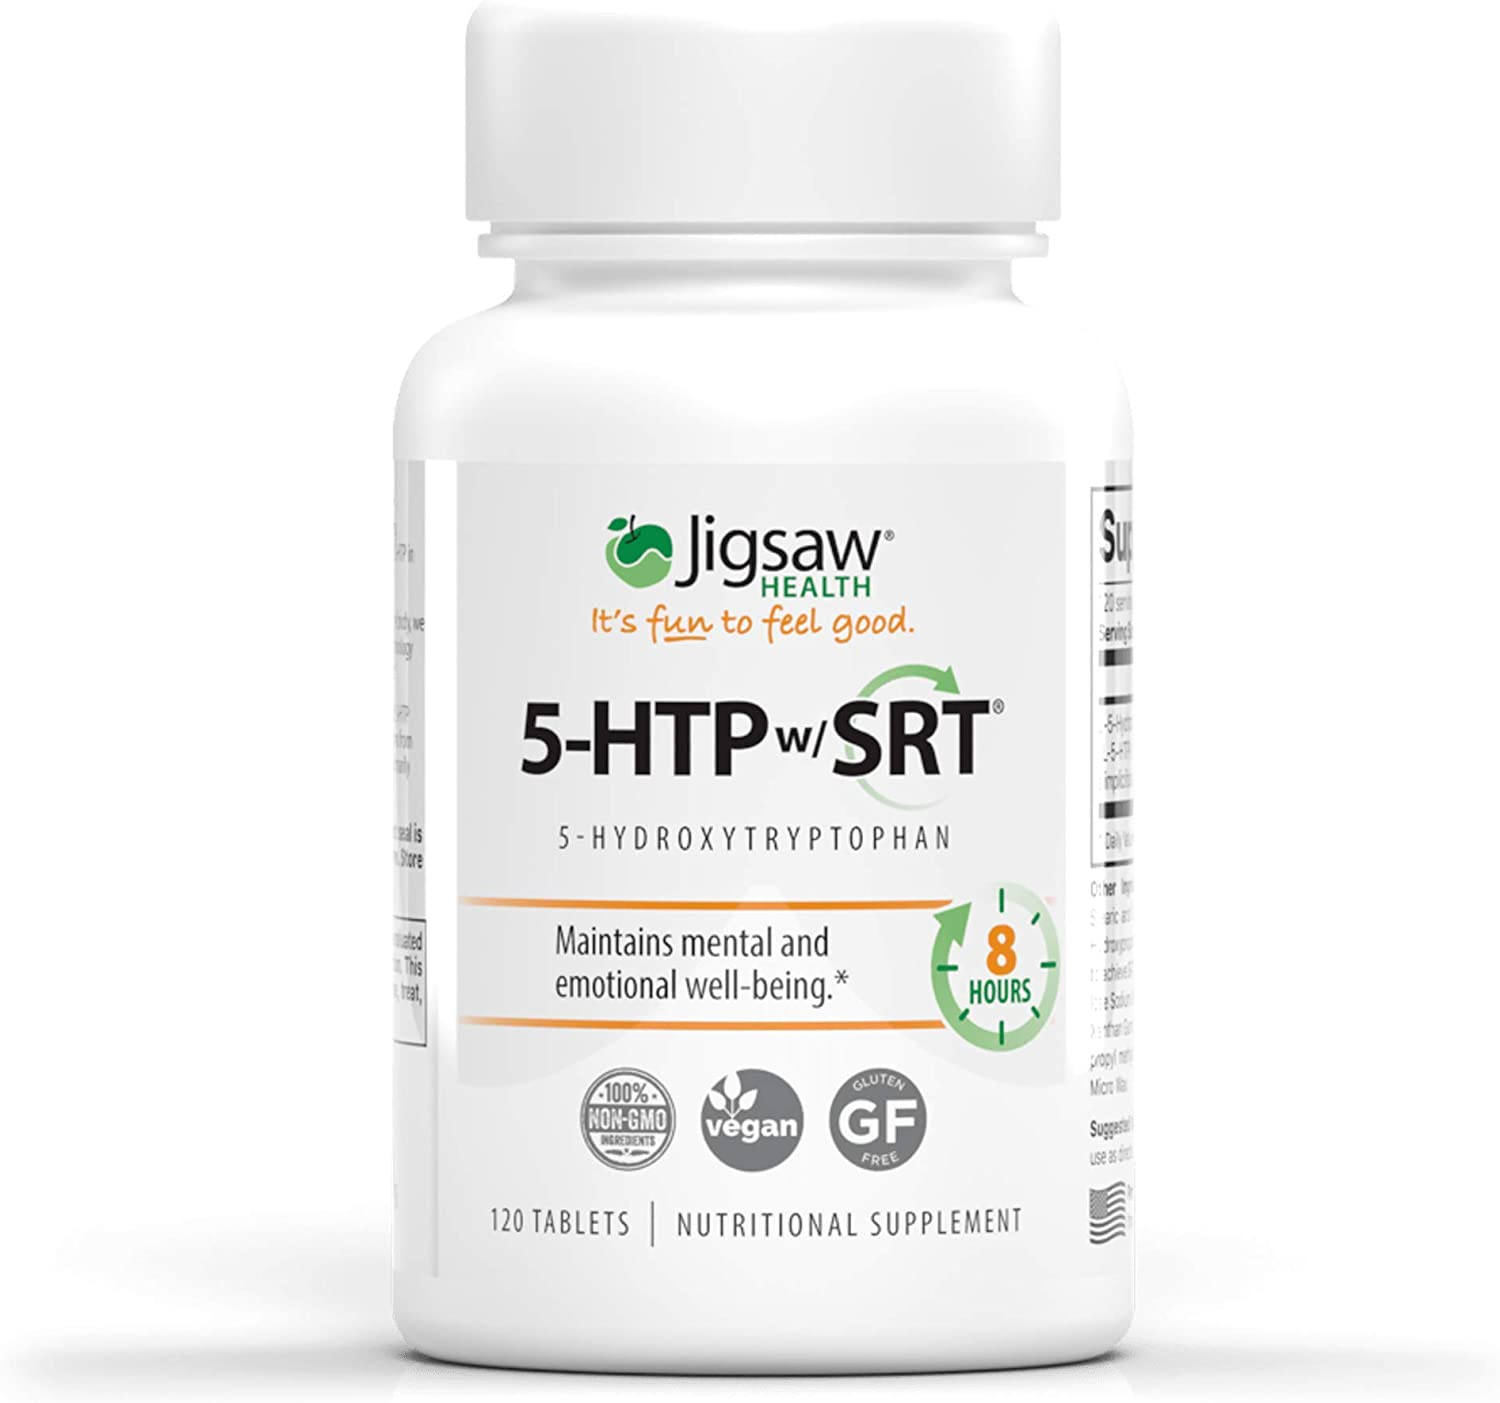 Jigsaw Health - 5-HTP Slow Release - Helps Improve Mood, Emotional Balance, and Sleep Quality utilizing only The purest Form of 5-HTP - 100mg Capsules - 120 Count: Health & Personal Care